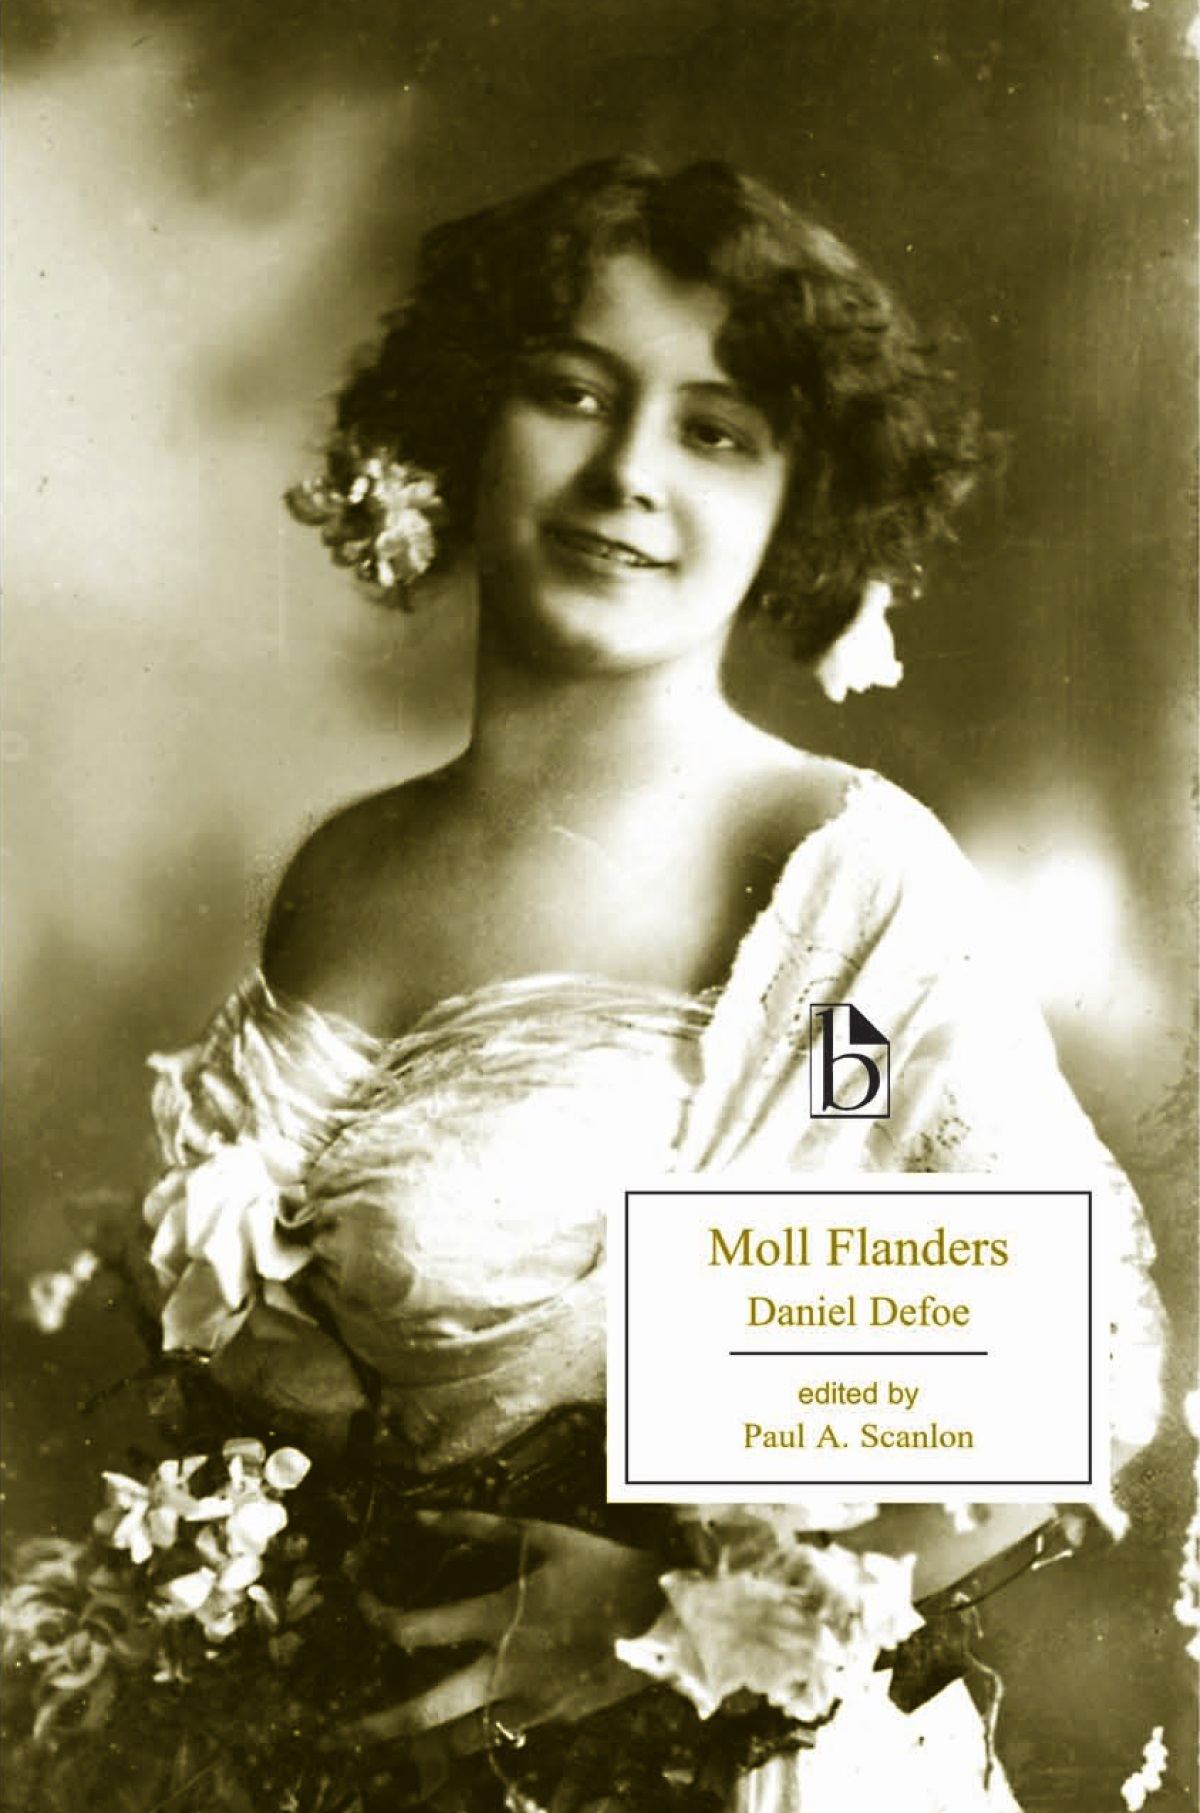 moll flanders broadview press moll flanders 9781551114514 jpg